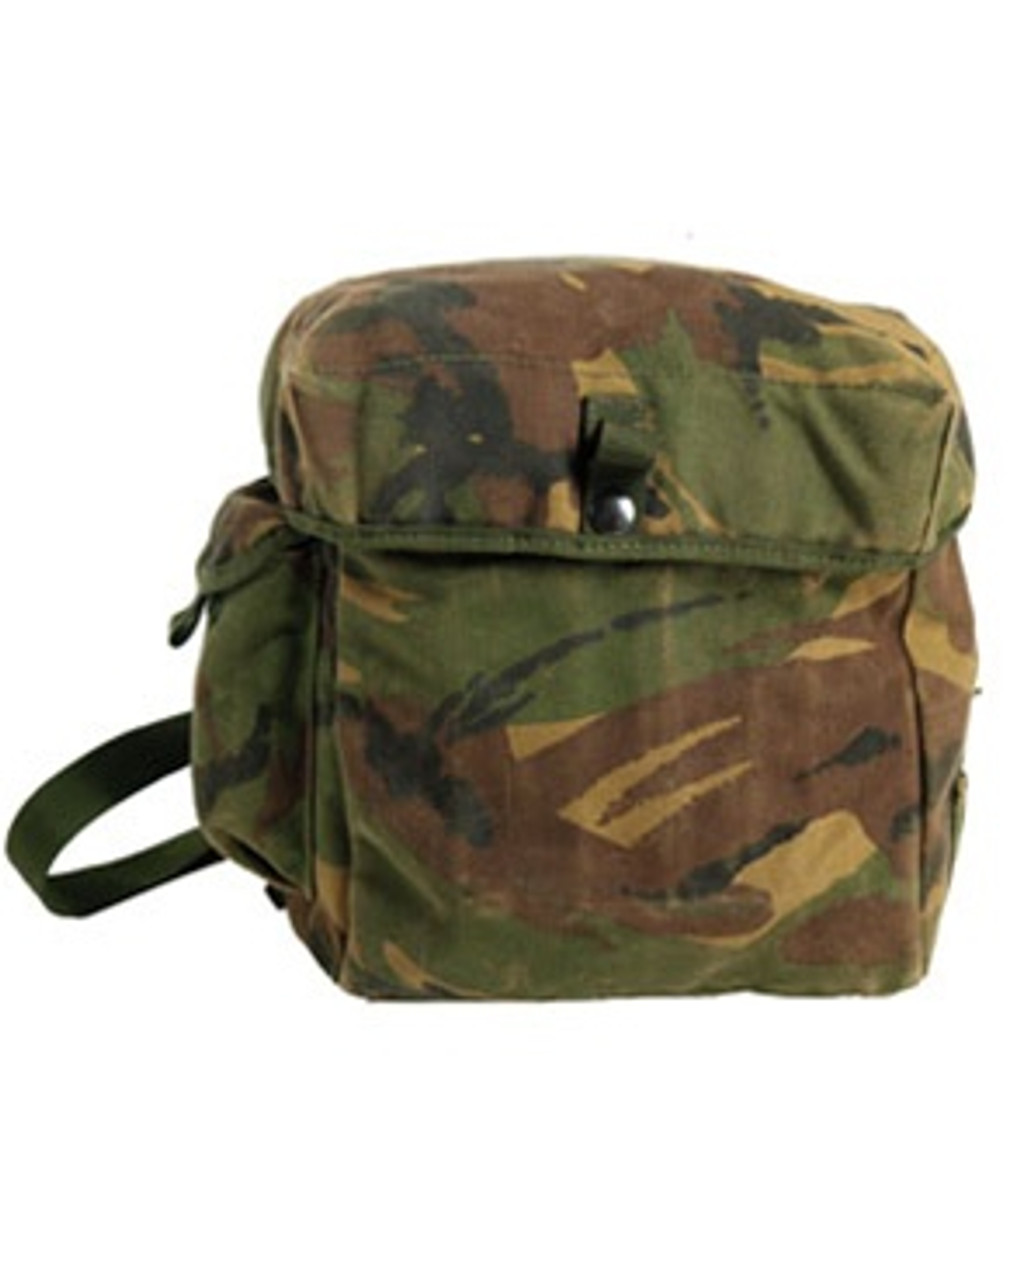 British Camo Gas Mask Bag from Hessen Antique